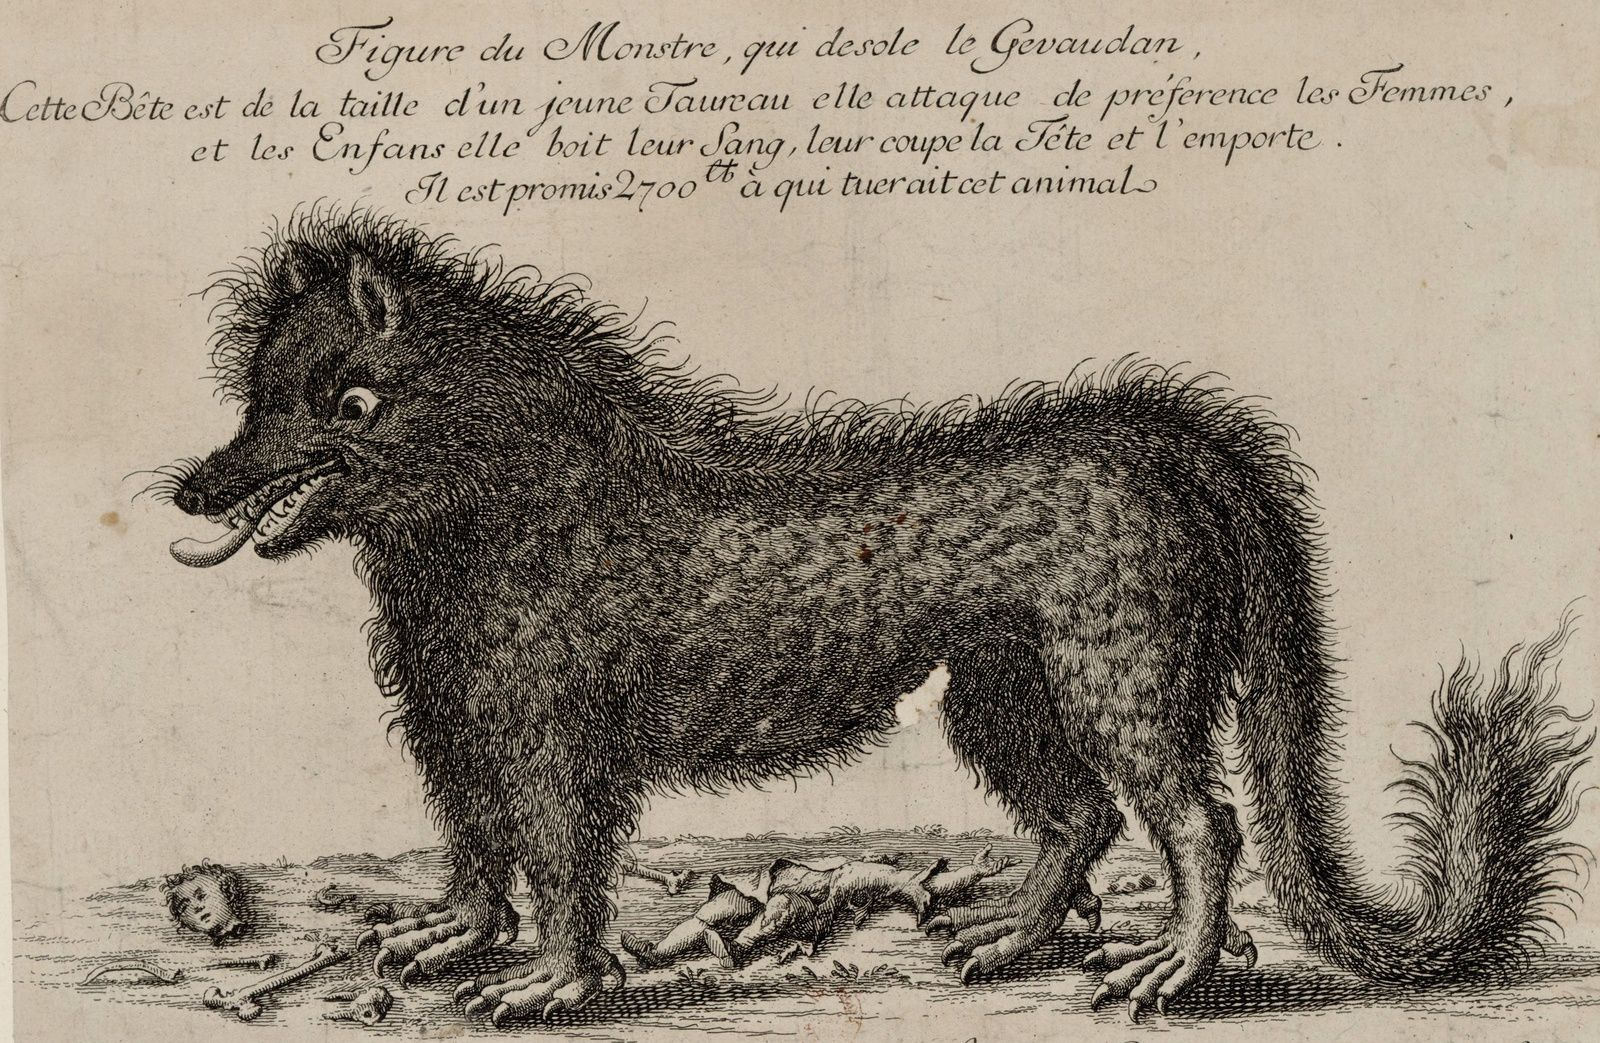 """Figure of the Monster that saddens Gevaudan"" engraving on copper 1764/1765 (Wikipedia / gallica)"